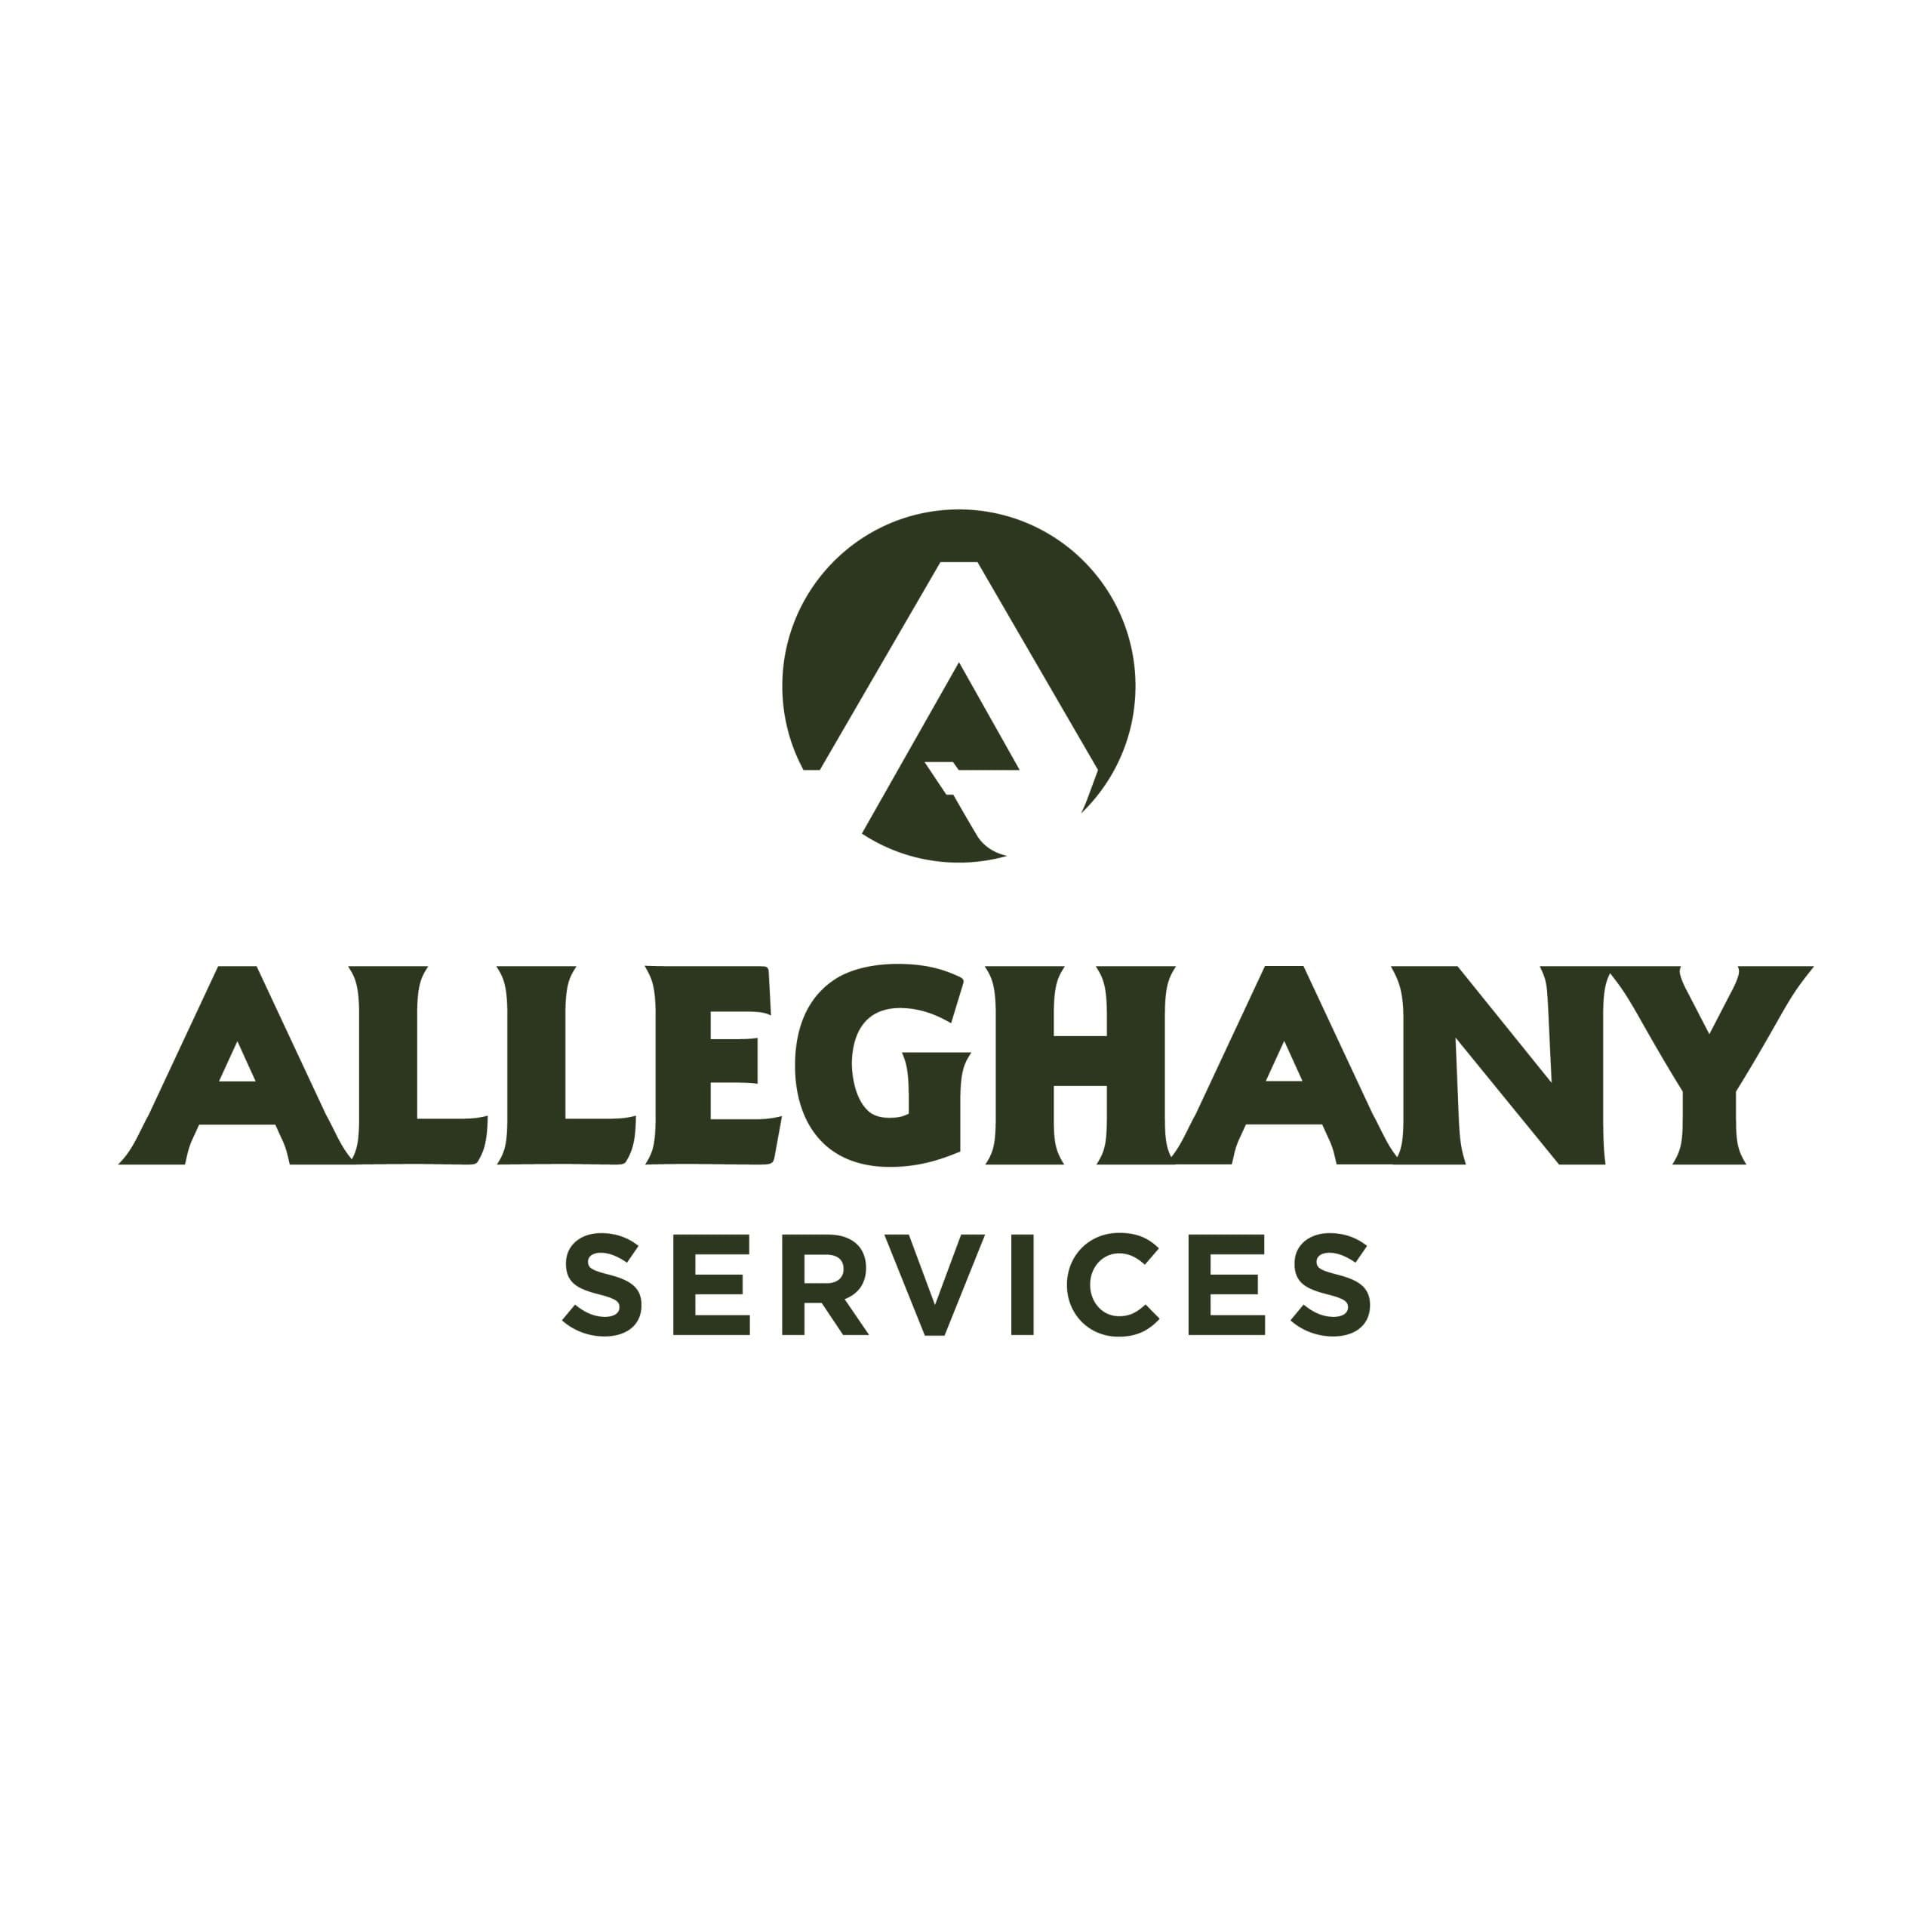 Alleghany Services Logo Design